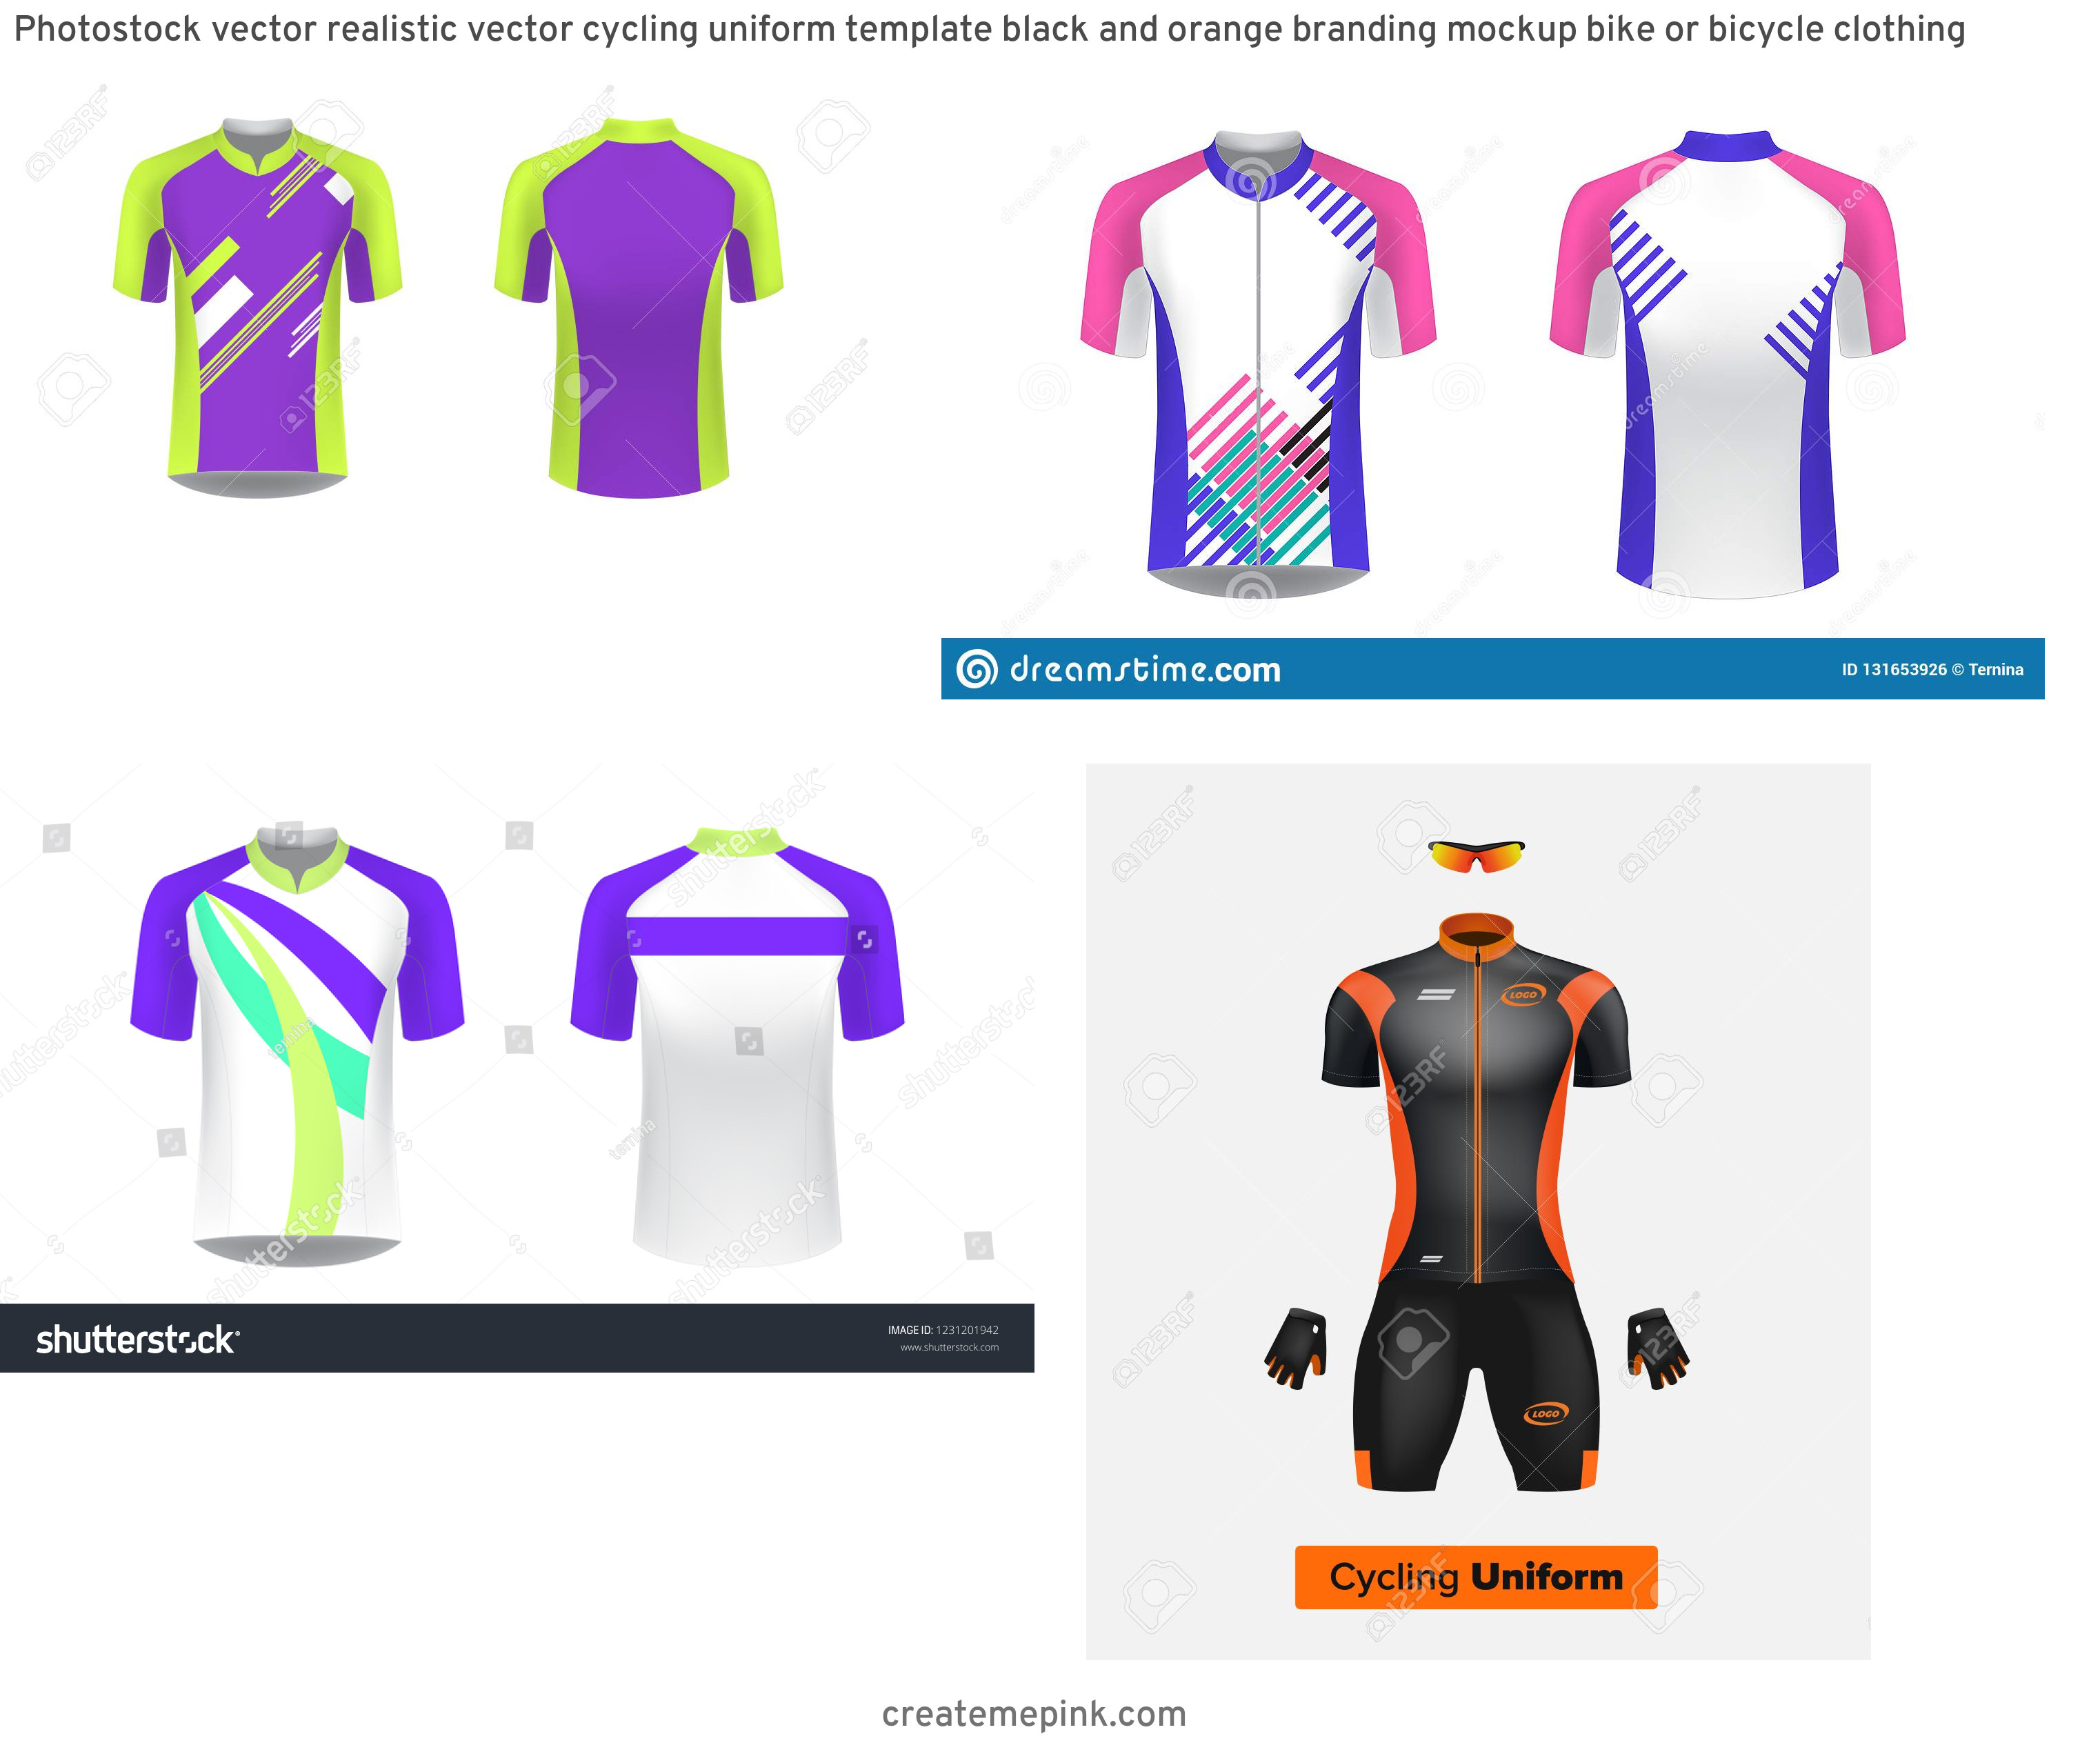 Cycling Kit Template Vector: Photostock Vector Realistic Vector Cycling Uniform Template Black And Orange Branding Mockup Bike Or Bicycle Clothing